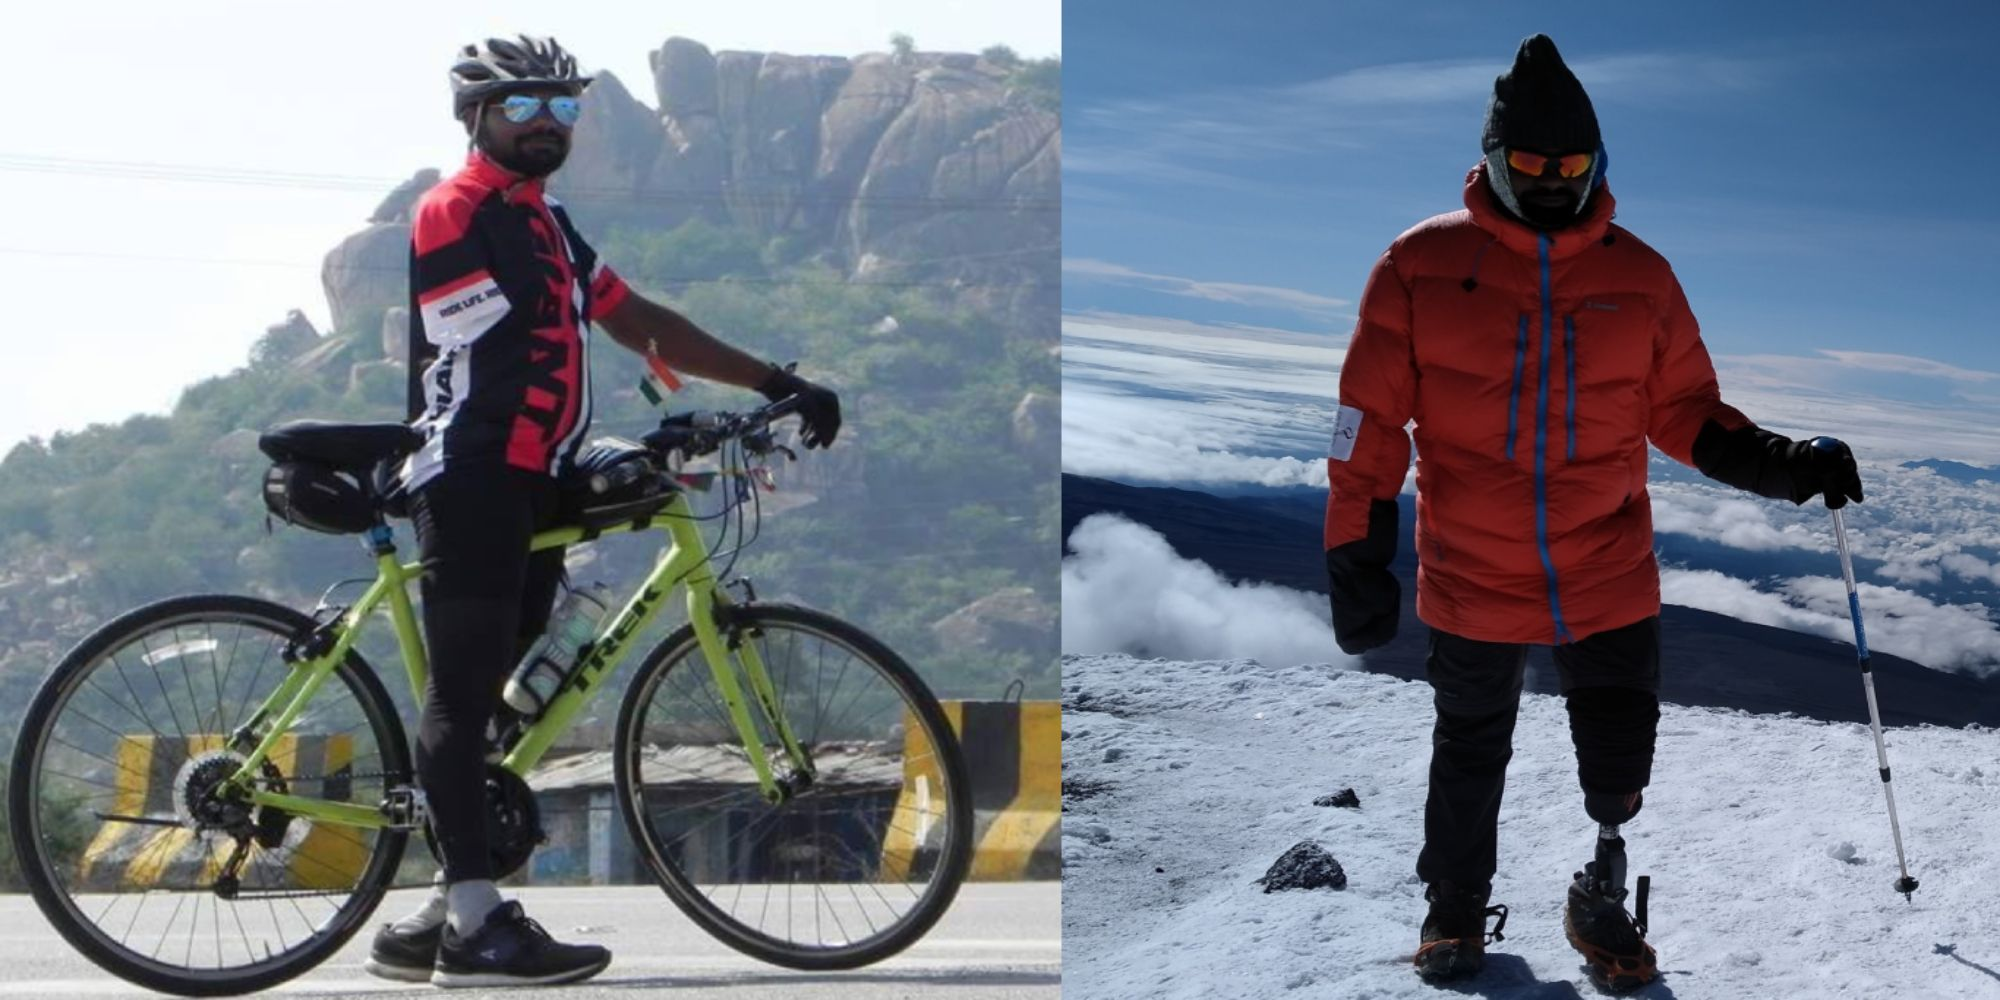 Shekar Goud – An inspiring story of India's first triple amputee to climb Mount Elbrus, the highest peak in Russia